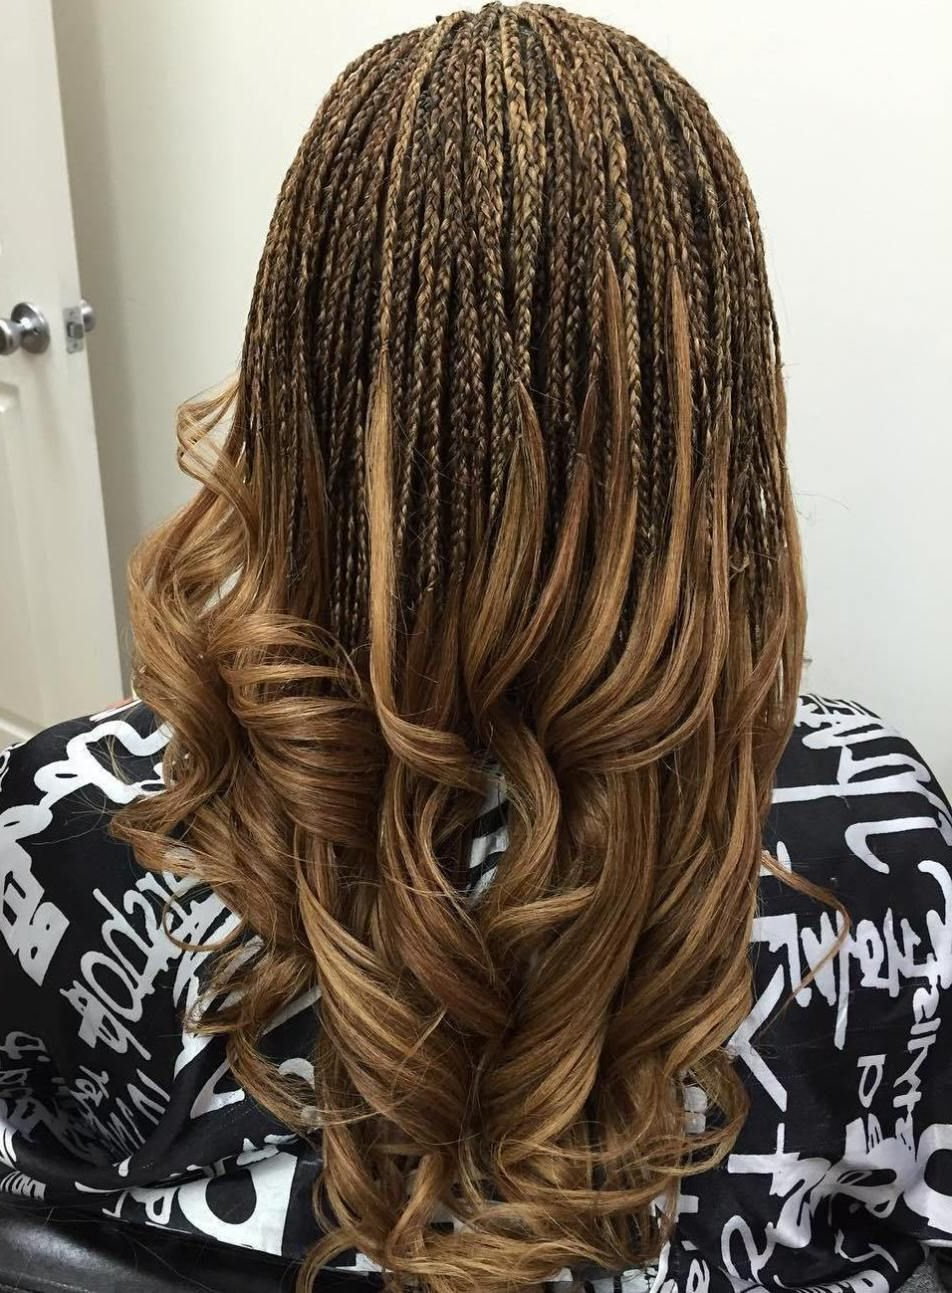 40 Ideas Of Micro Braids And Invisible Braids Hairstyles Throughout Widely Used Micro Braid Hairstyles With Curls (View 3 of 20)